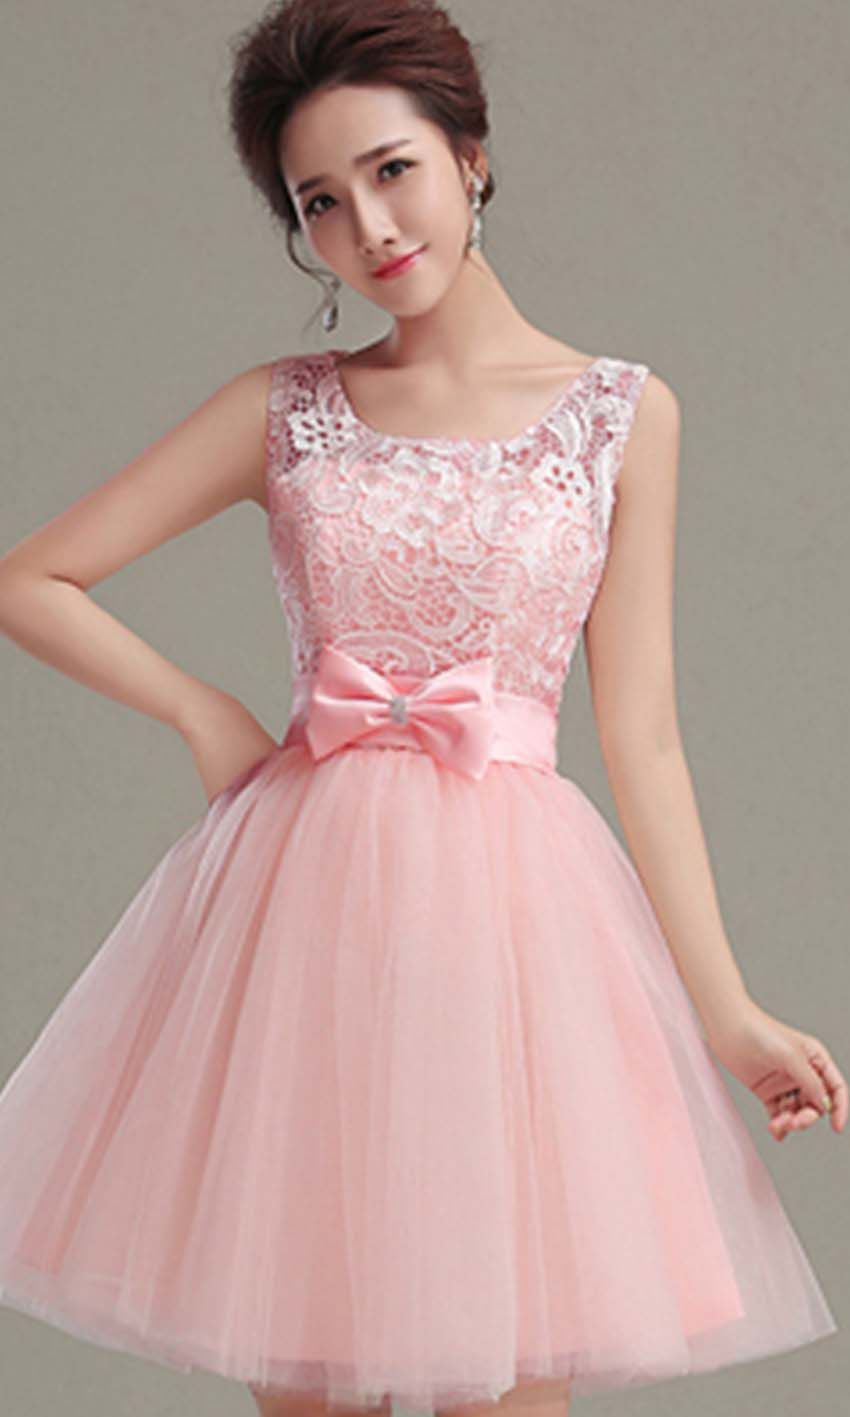 cute sweet one piece frocks for girls - Google Search | Vestidos ...